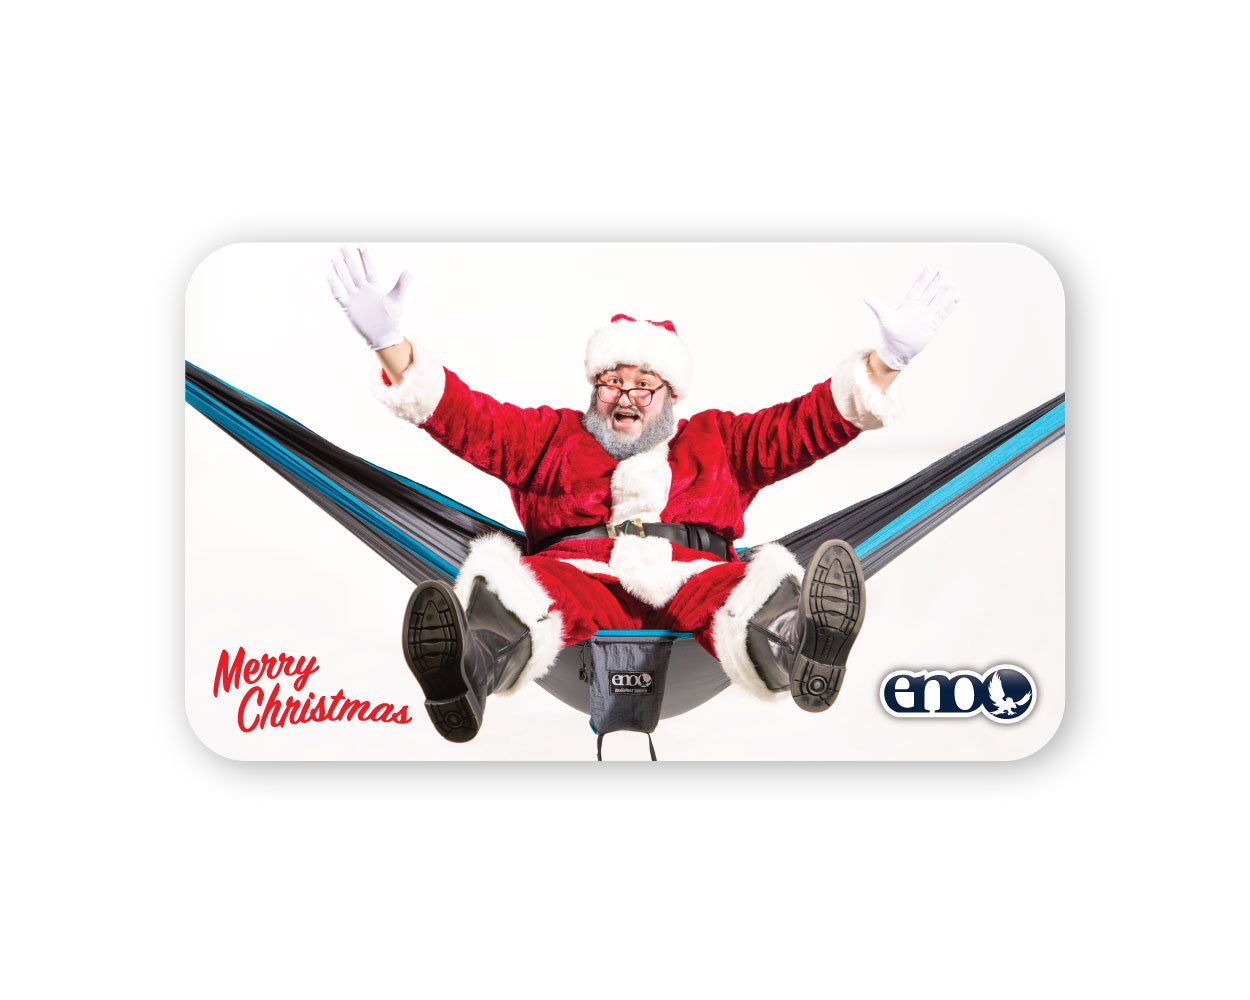 ENO Nation $25.00 / Merry Christmas Gift Card - 17359435432085